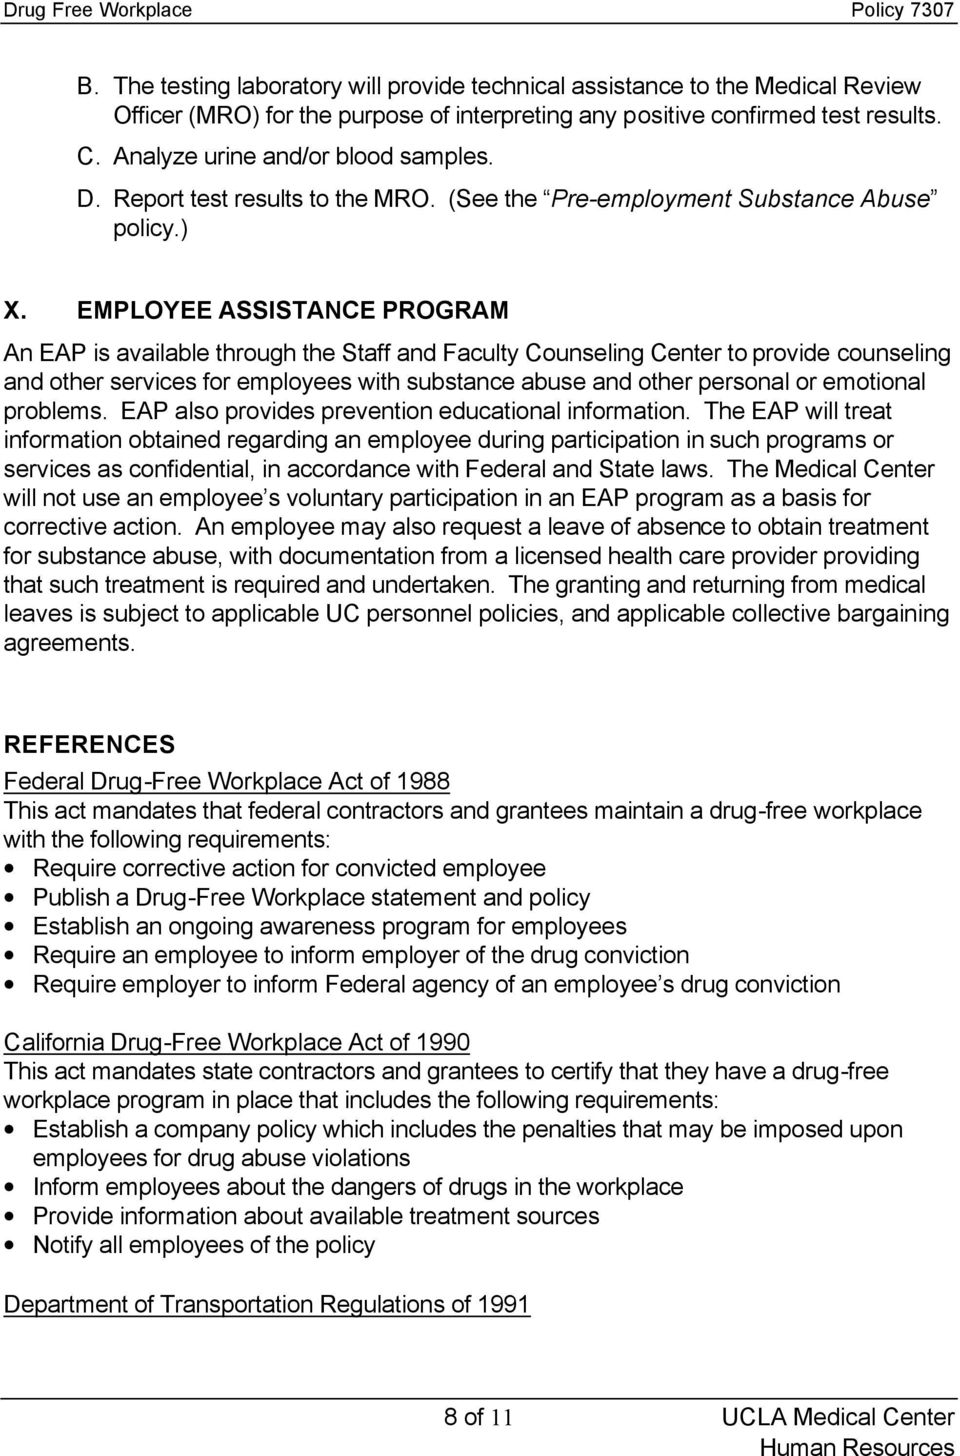 EMPLOYEE ASSISTANCE PROGRAM An EAP is available through the Staff and Faculty Counseling Center to provide counseling and other services for employees with substance abuse and other personal or